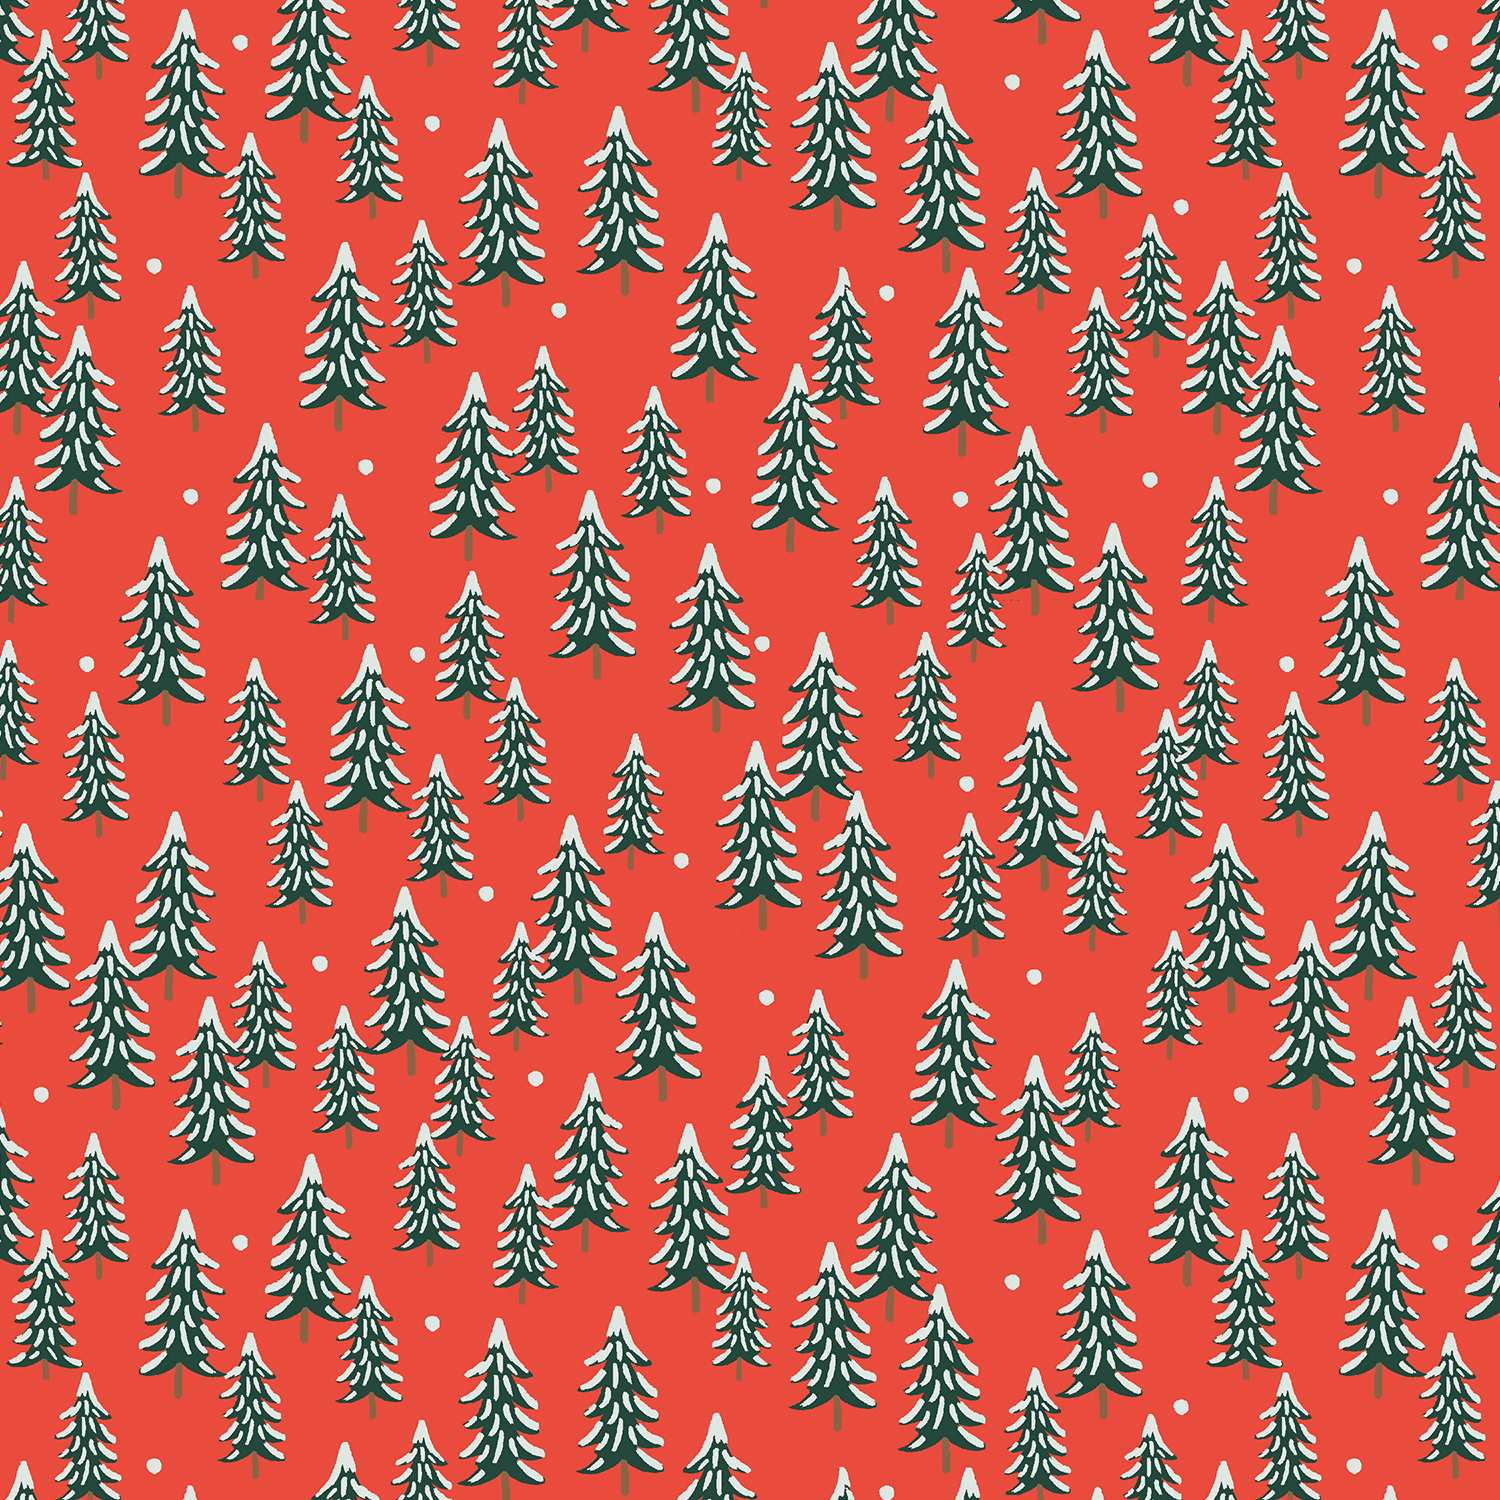 Holiday Classics - Red Fir Trees - By Rifle Paper Co. For Cotton And Steel